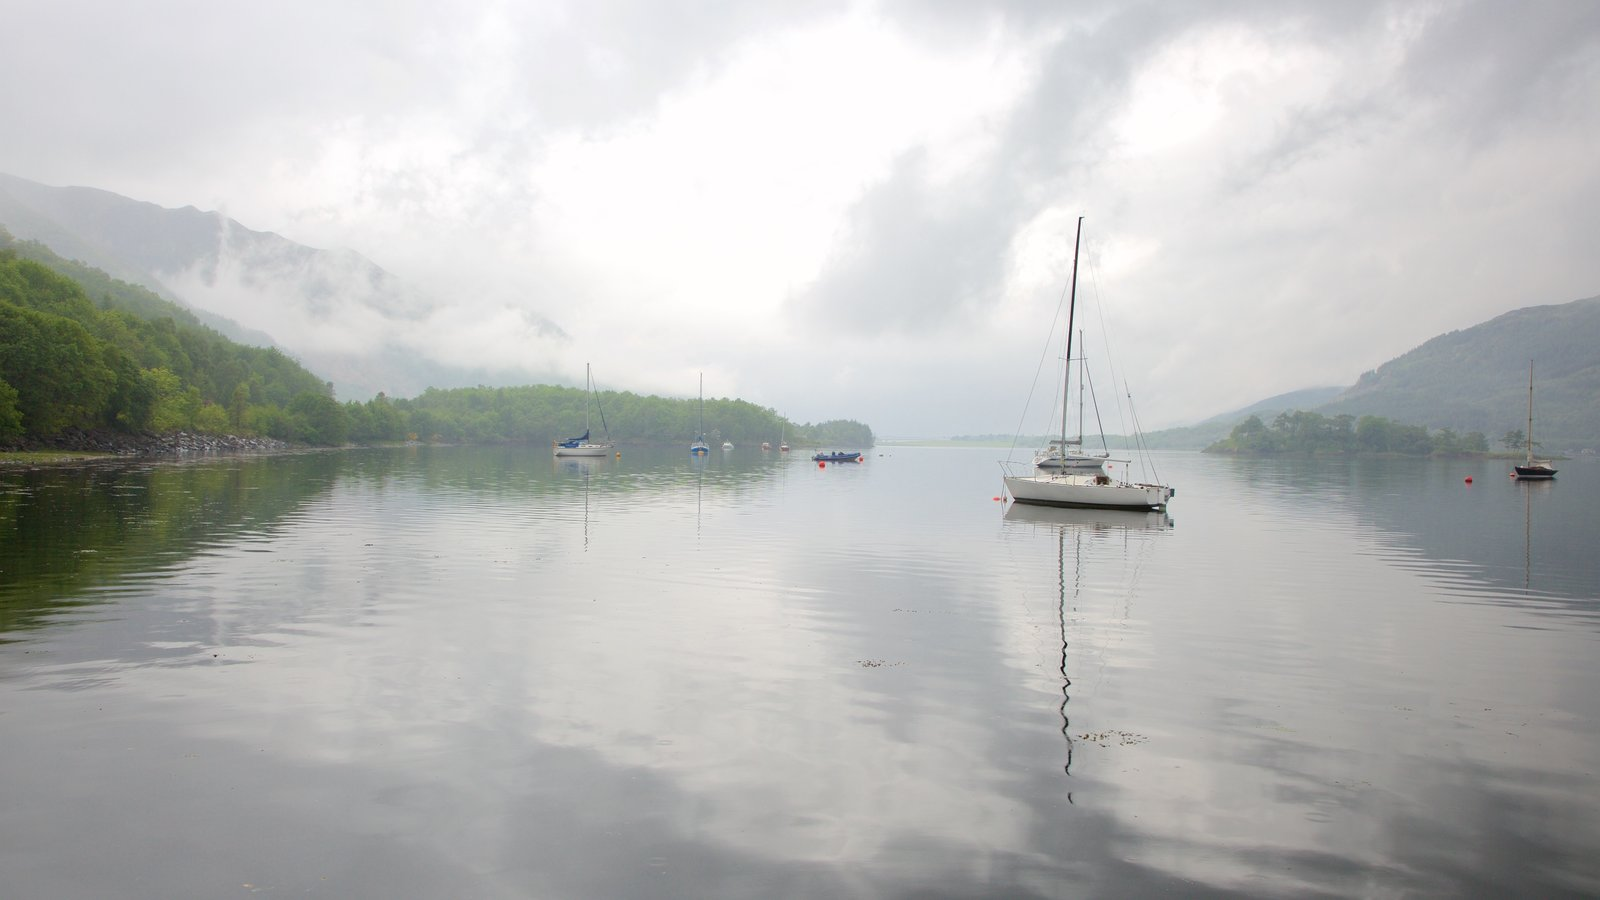 Glencoe featuring a lake or waterhole, sailing and boating